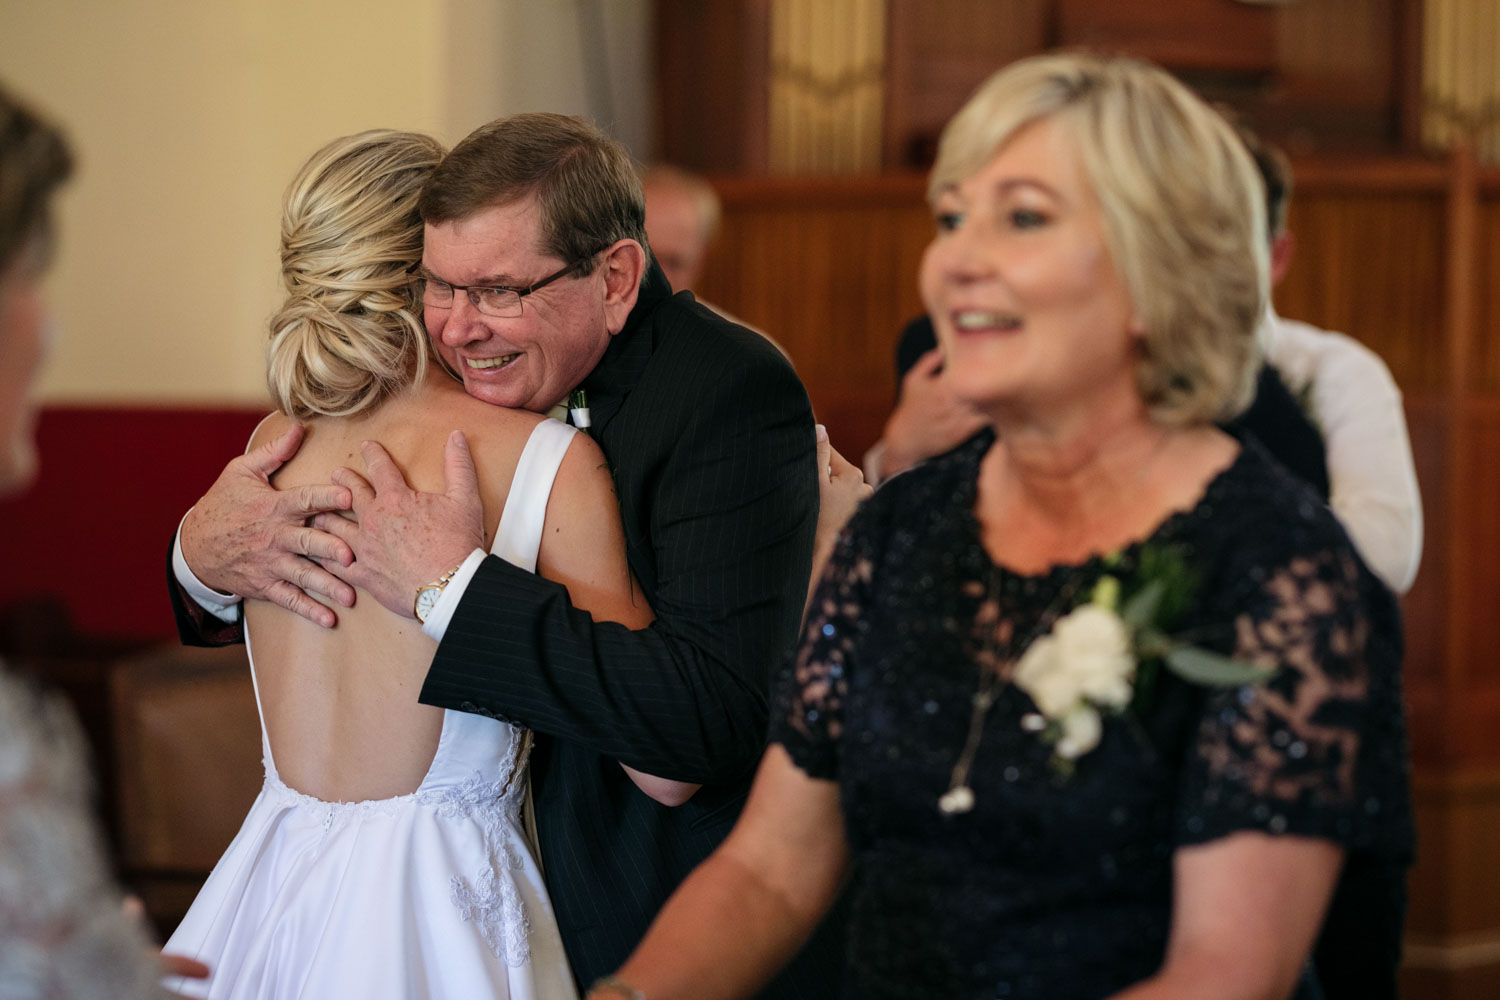 Father Of Bride Hugs And Congratulates Daughter After Wedding Ceremony